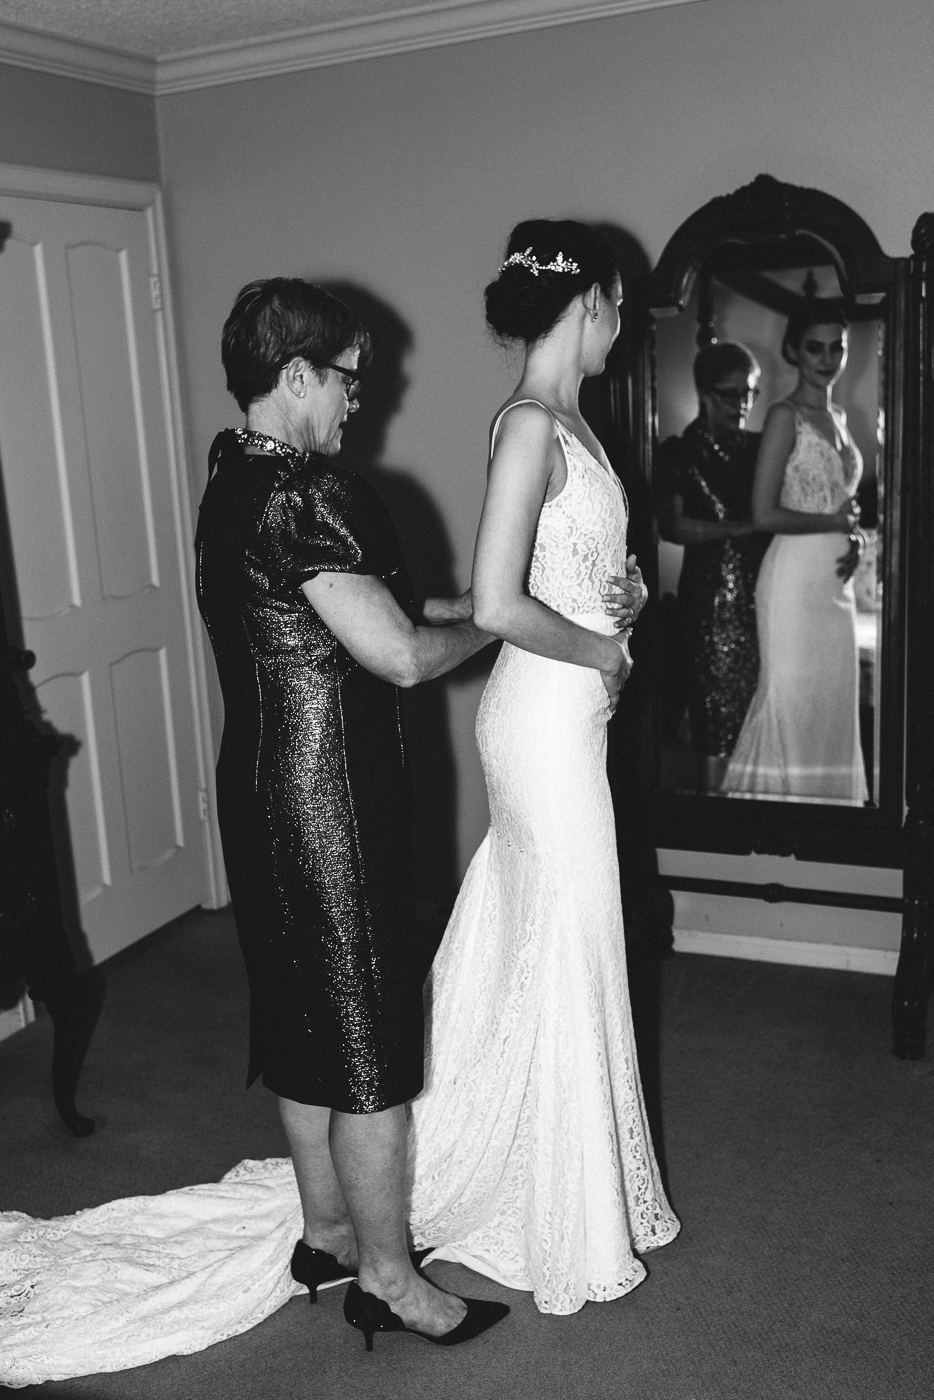 black and white mother and daughter wedding gown v-neck lace getting ready